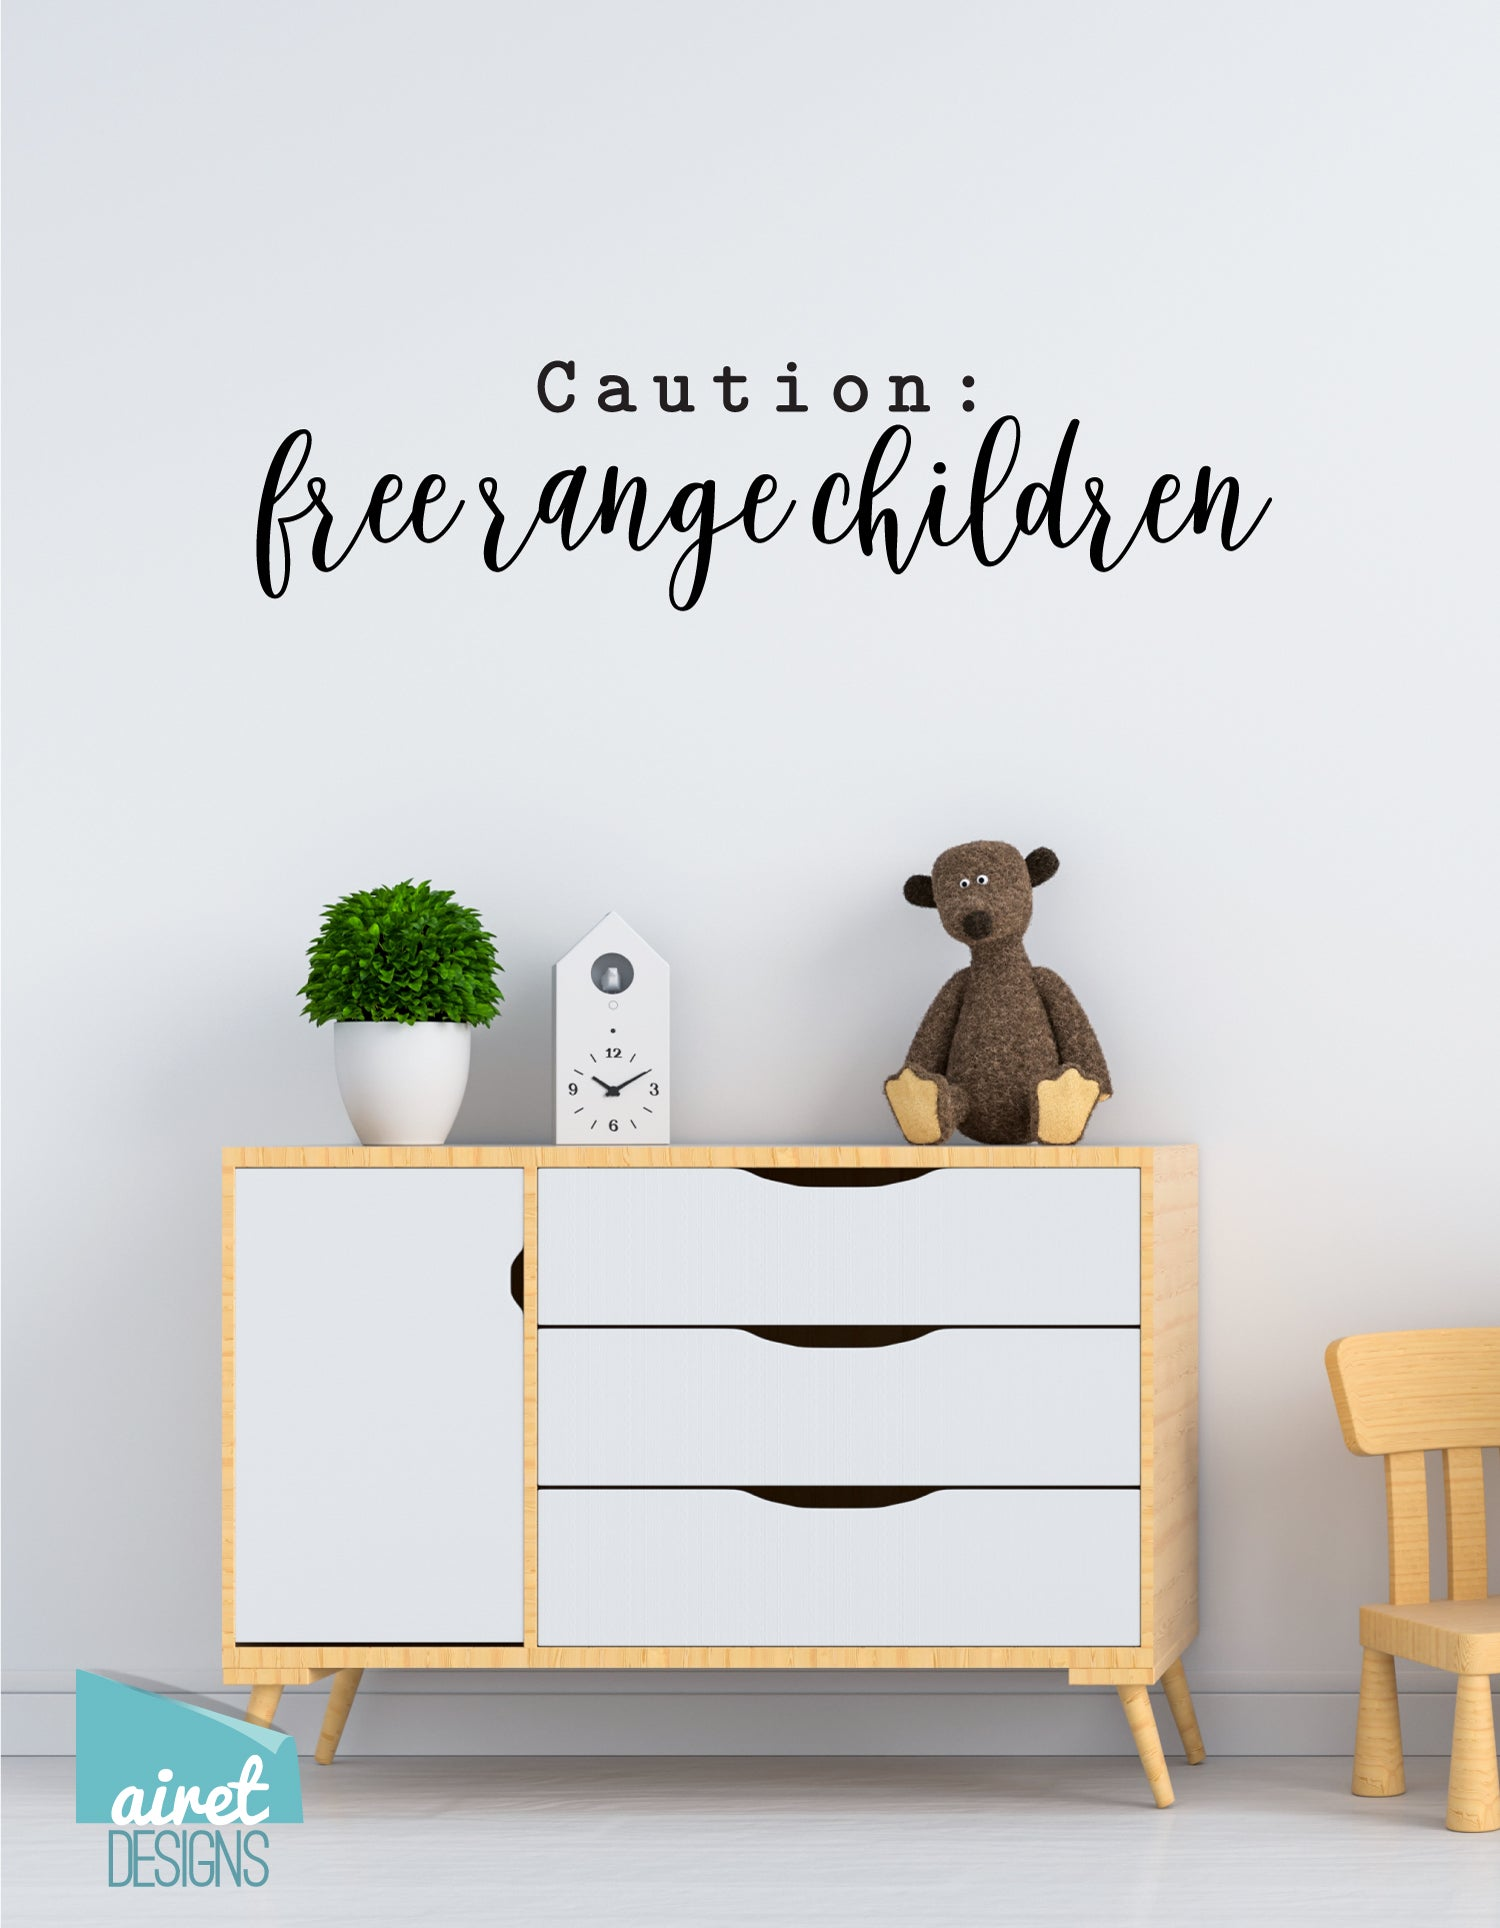 Caution: Free Range Children - Decal Lettering Only! - Vinyl Decal Wall Art Decor Sticker - Home Kids Family DIY Sign v2